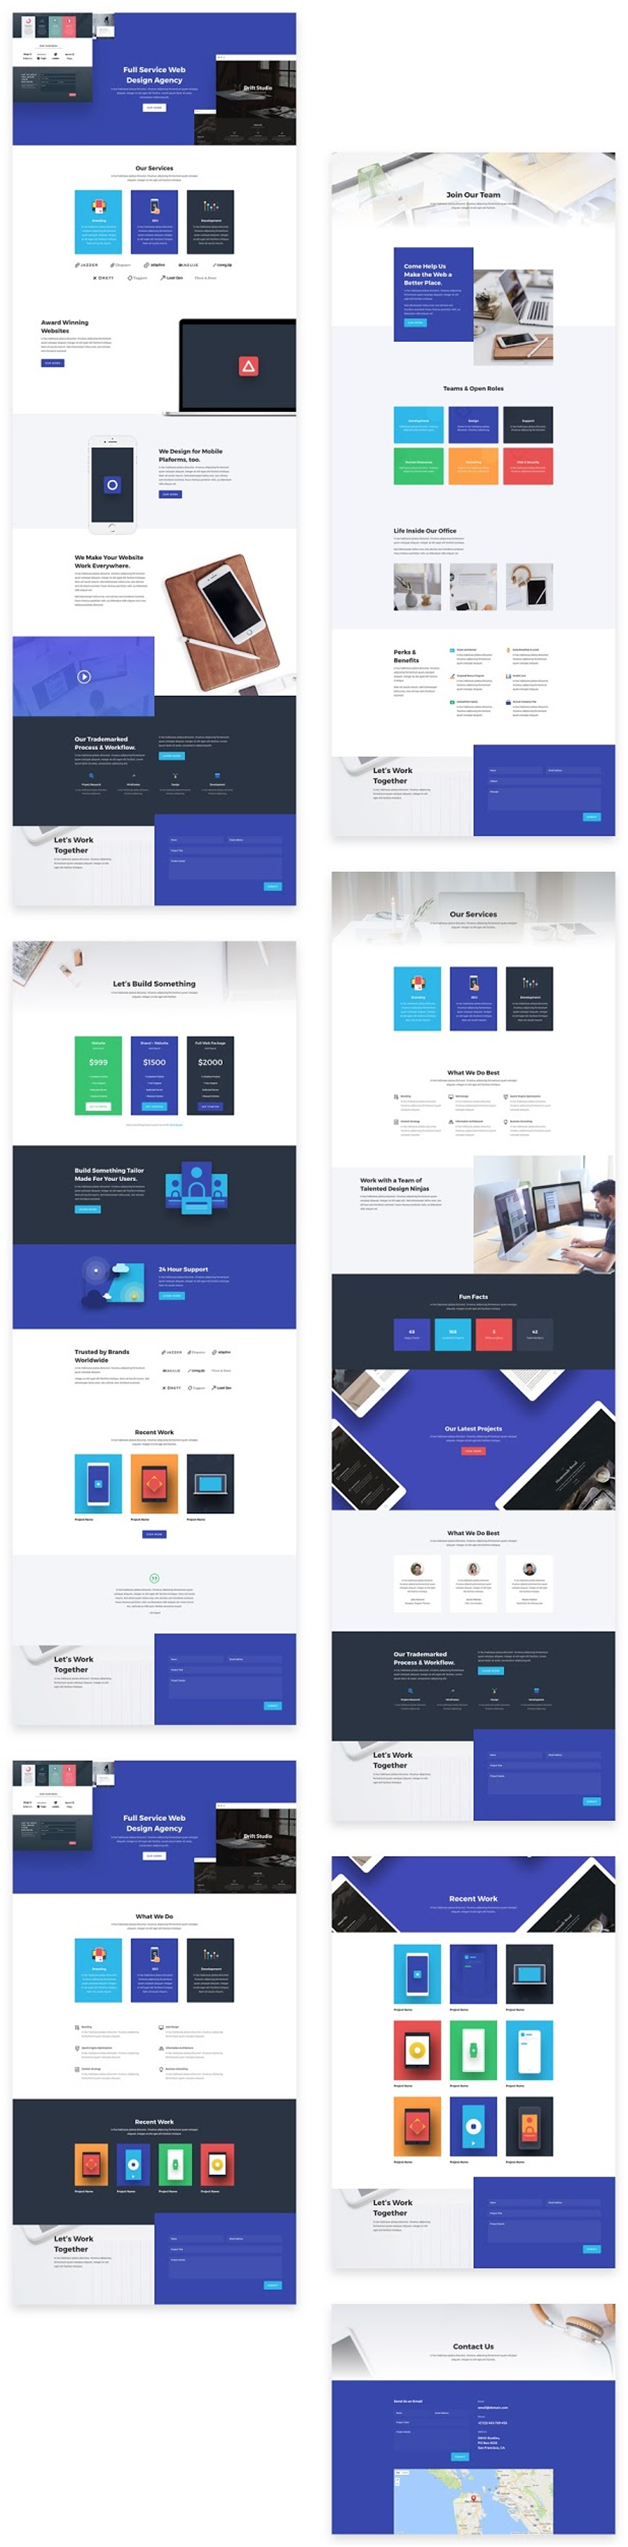 7 Divi Portfolio Layouts for Showcasing Your work